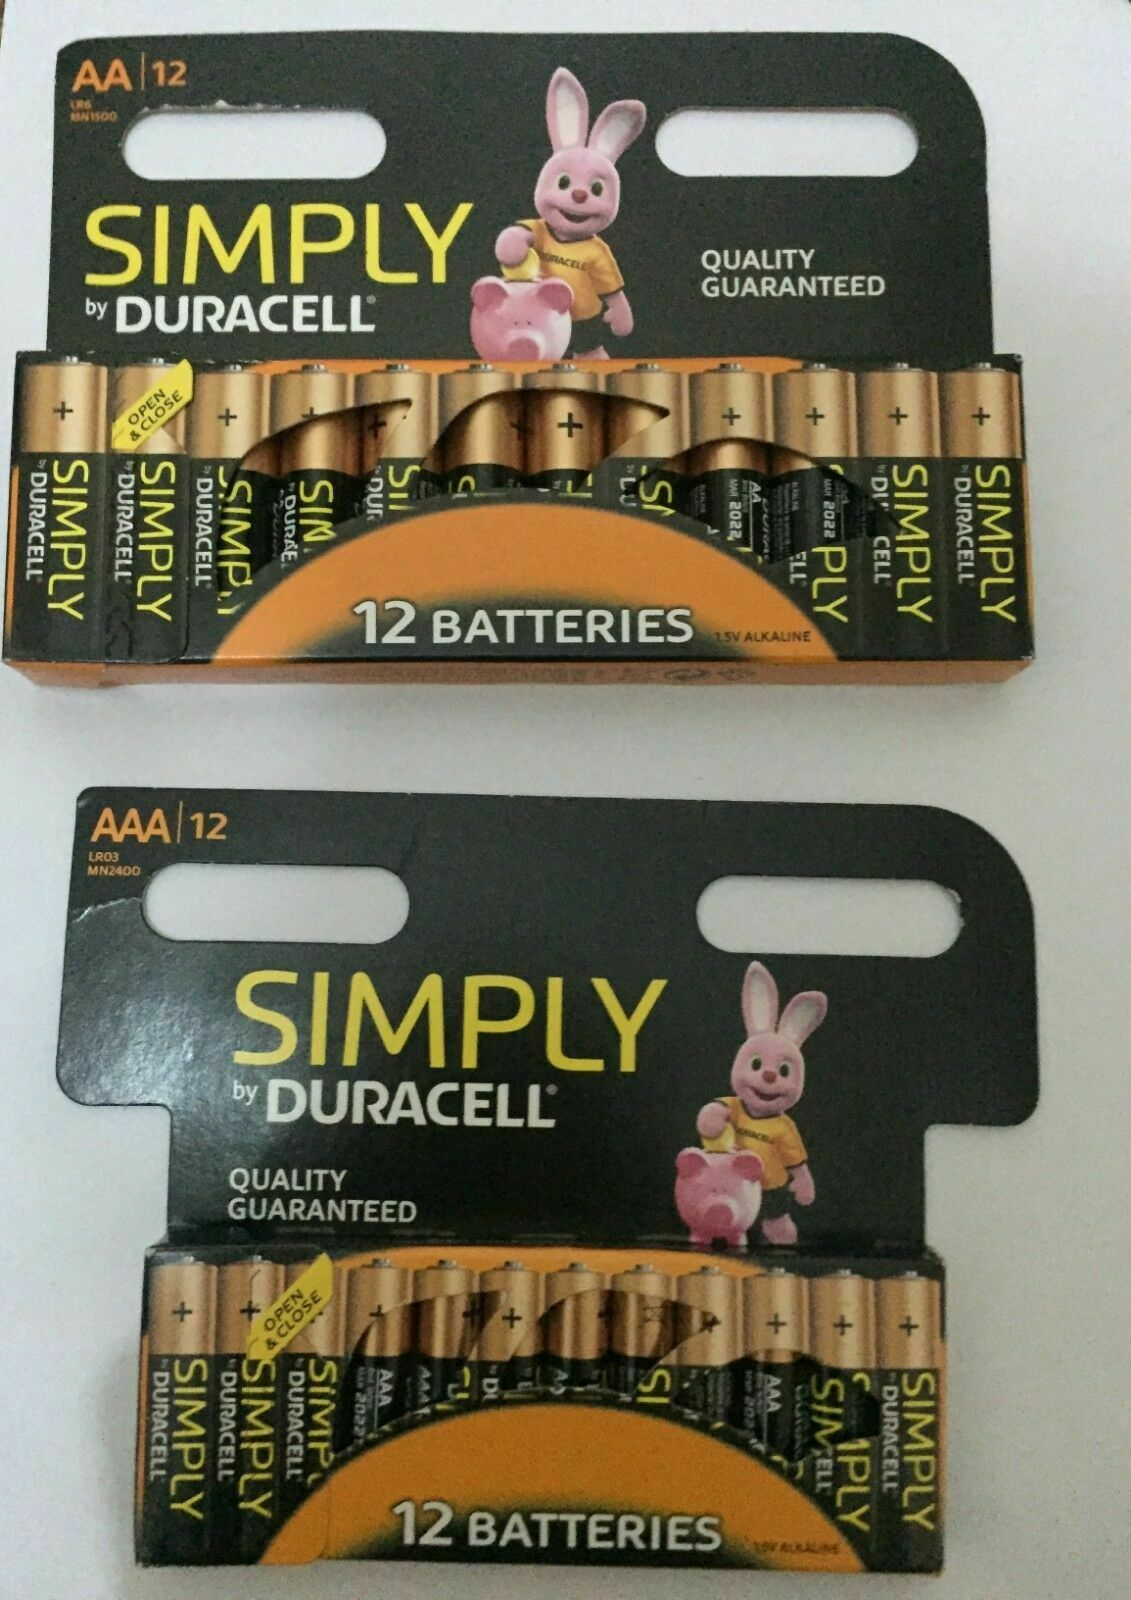 12 x DURACELL Simply AA + 12 x Duracell Simply AAA 1.5 batteries - LONG EXPIRY